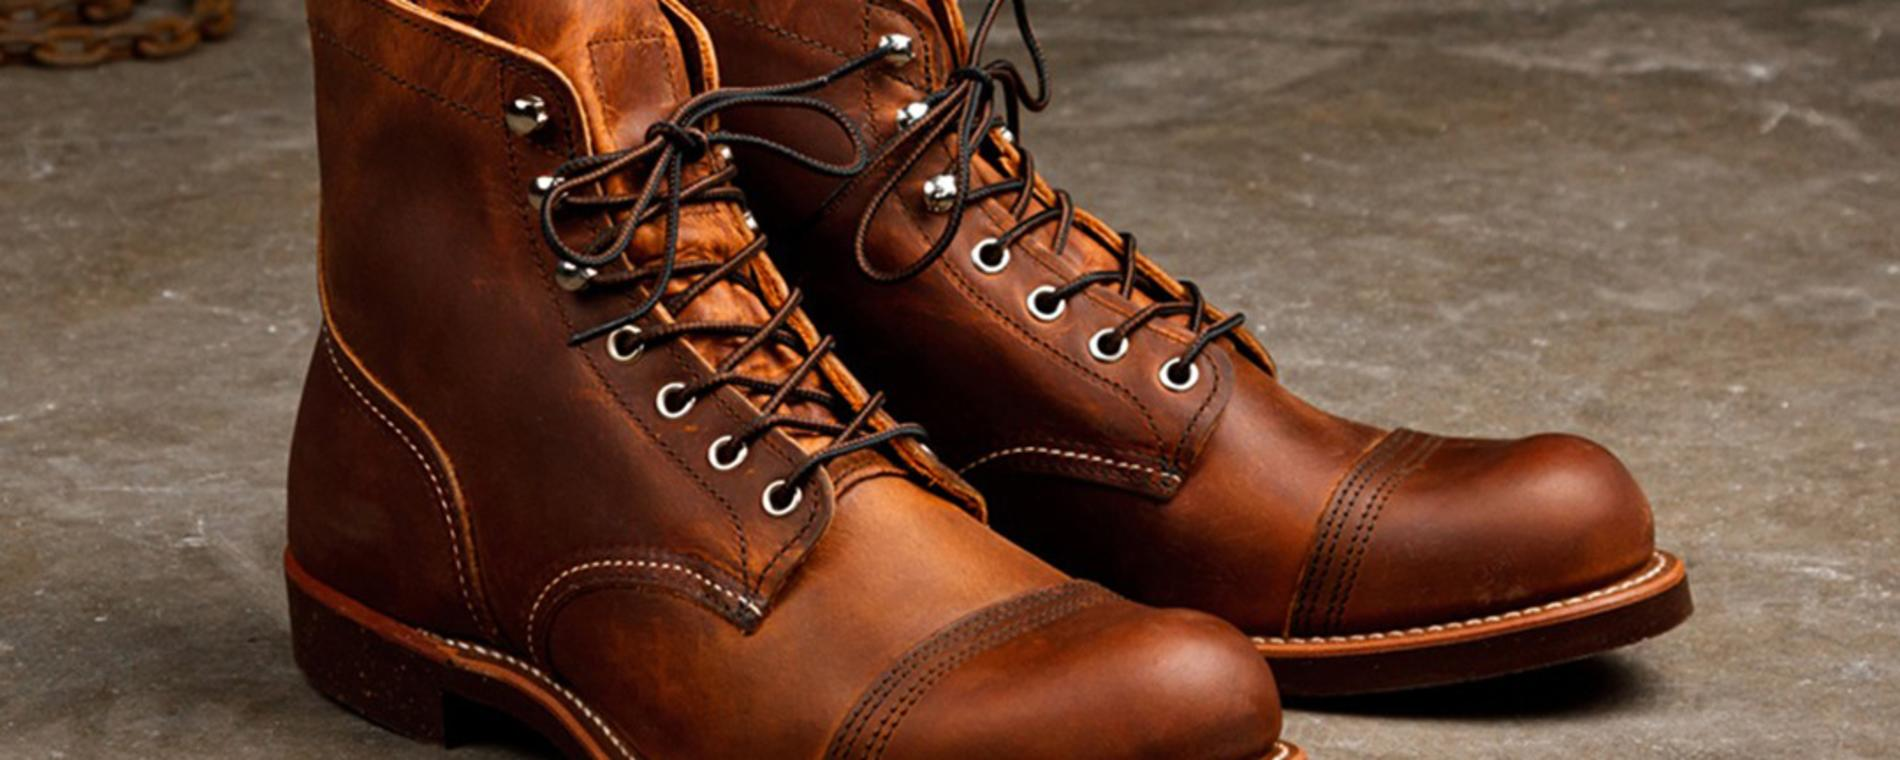 Red Wing leather boots Visit Wichita